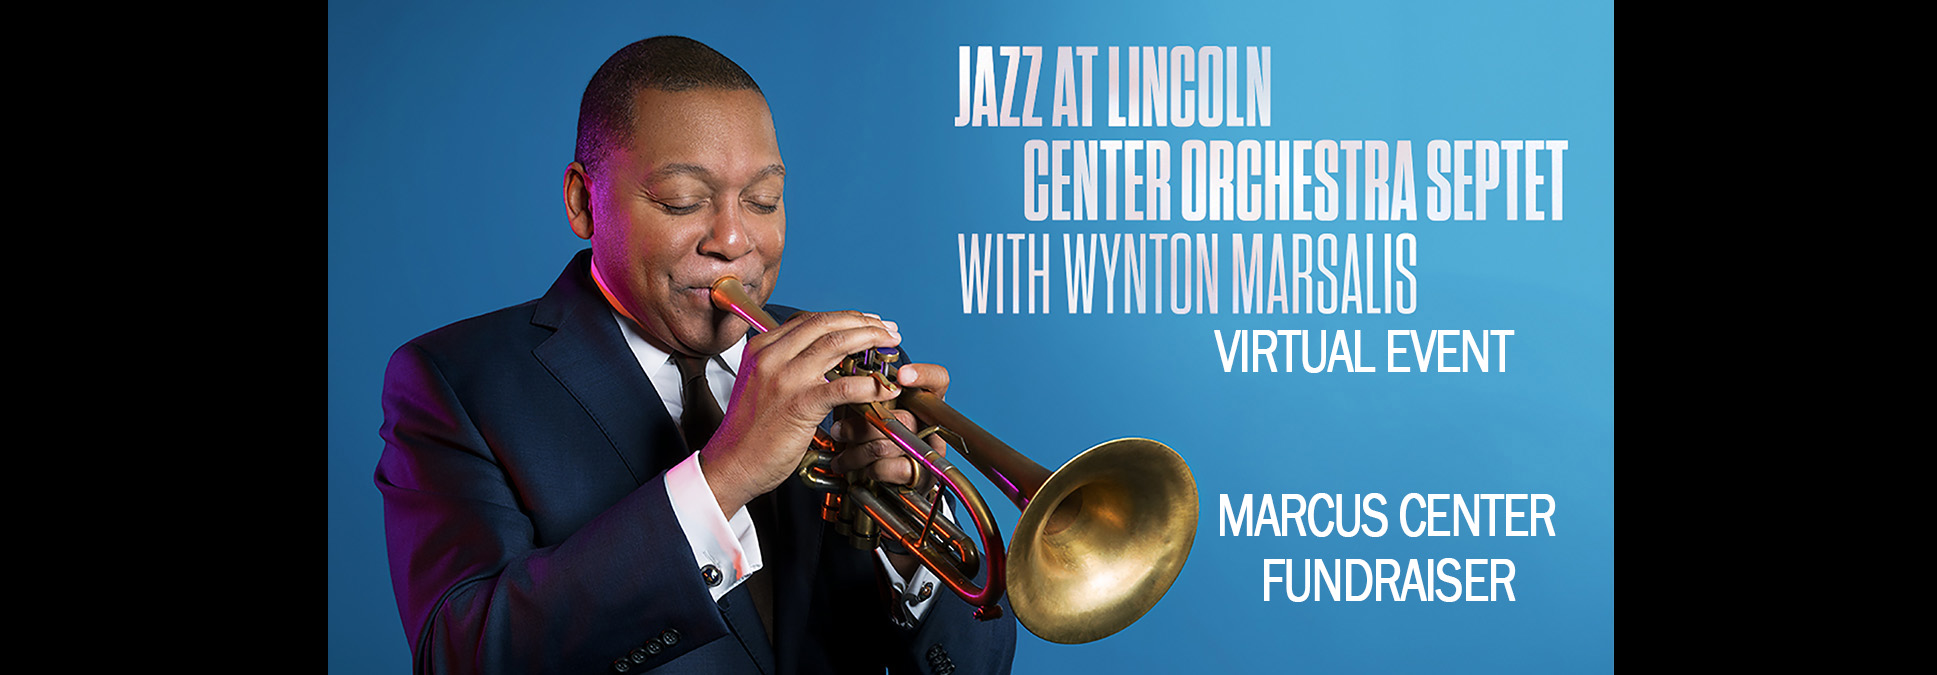 The Sounds of Democracy Jazz at Lincoln Center Orchestra Septet with Wynton Marsalis